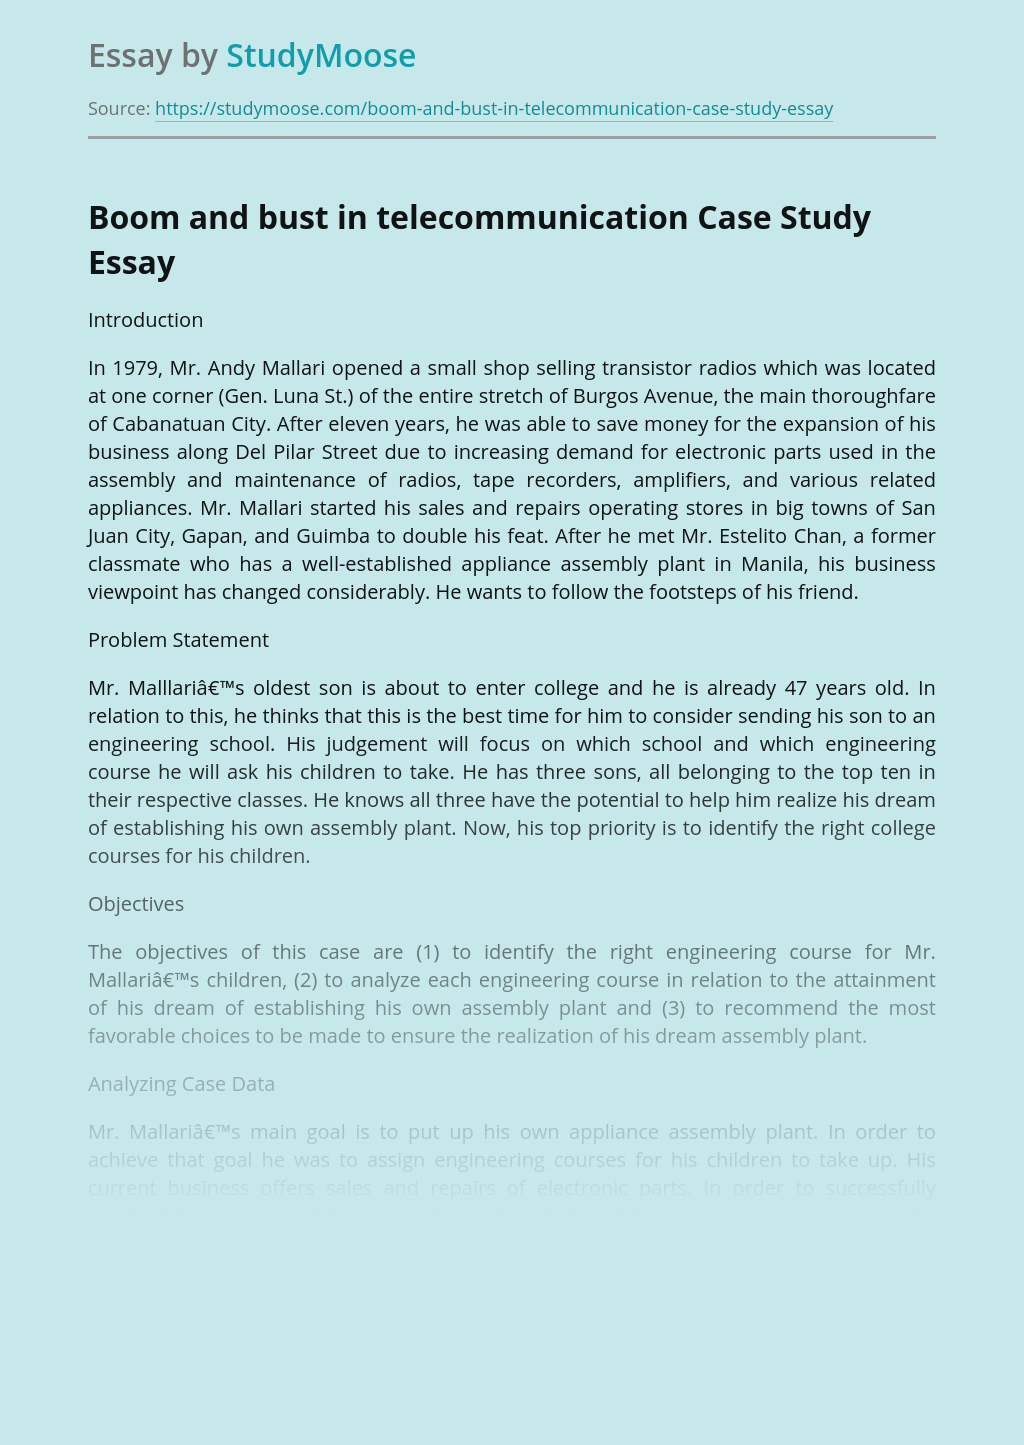 Boom and bust in telecommunication Case Study